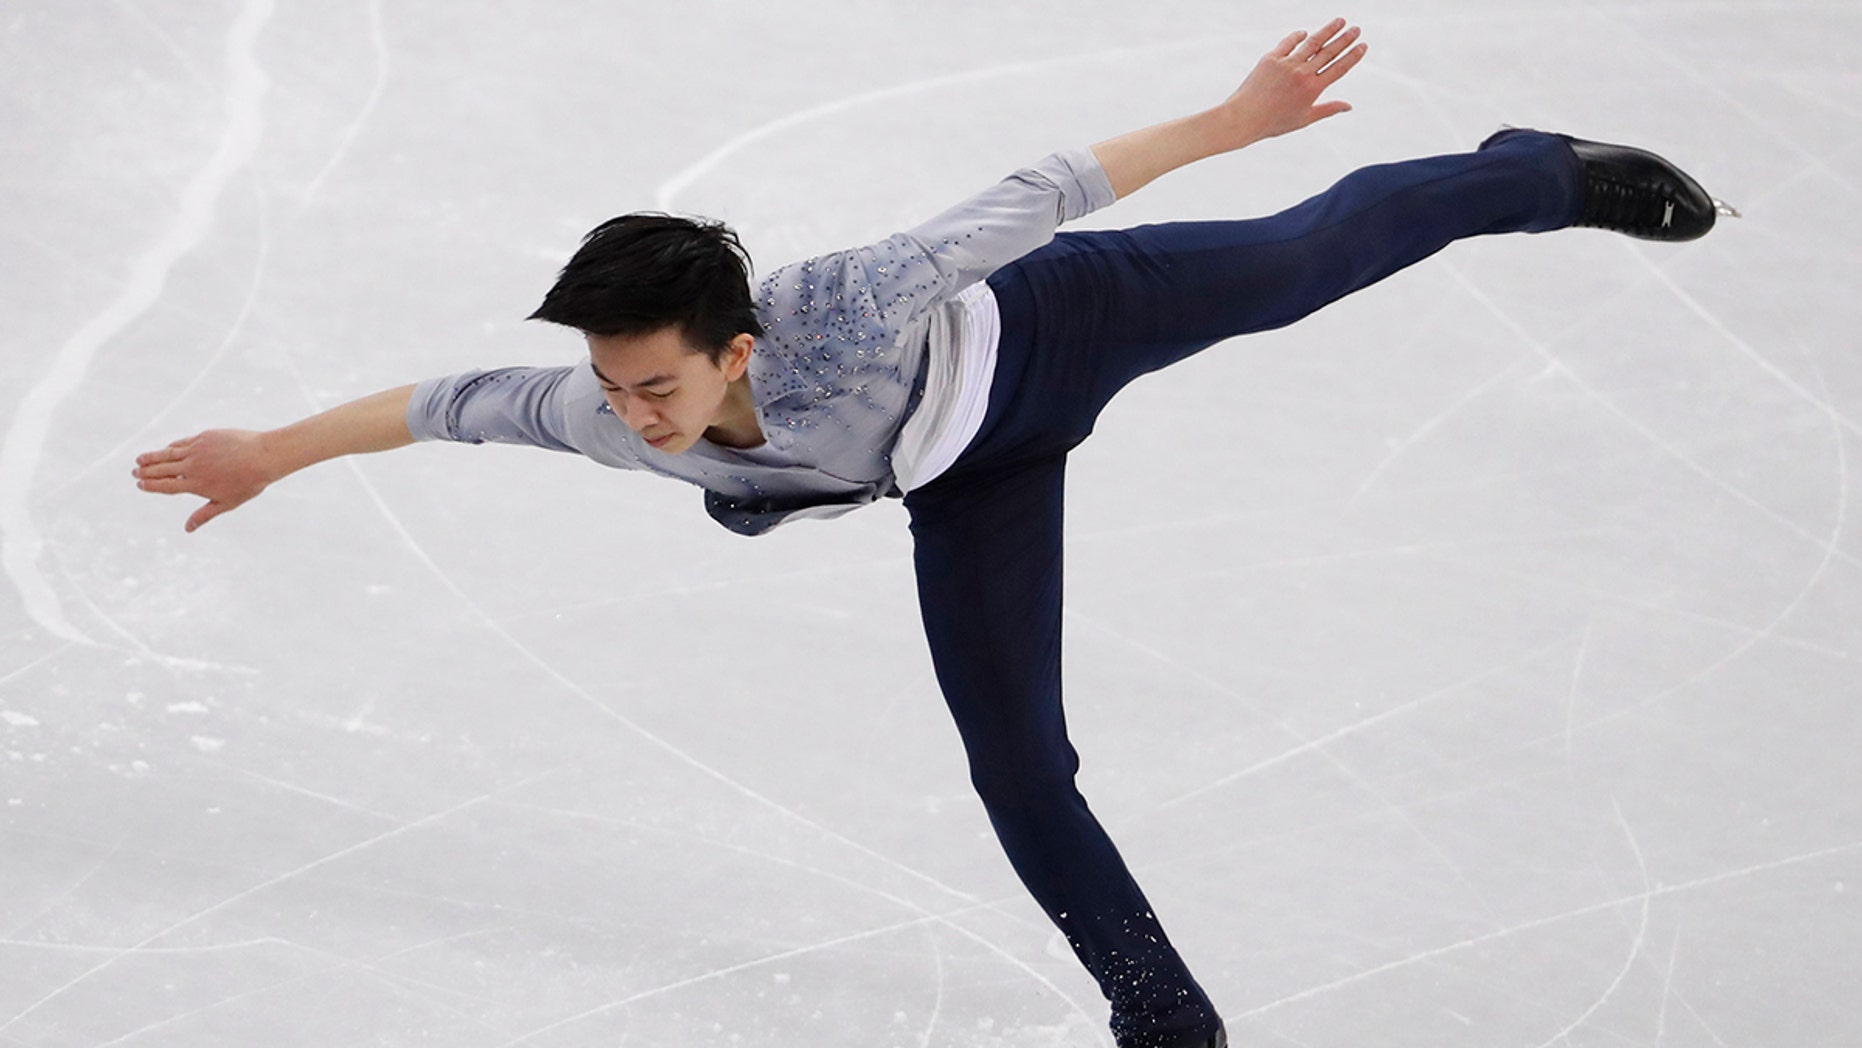 17-year-old Vincent Zhou of California became the first person to land a Quad Lutz at the 2018 Pyeongchang Winter Olympics.